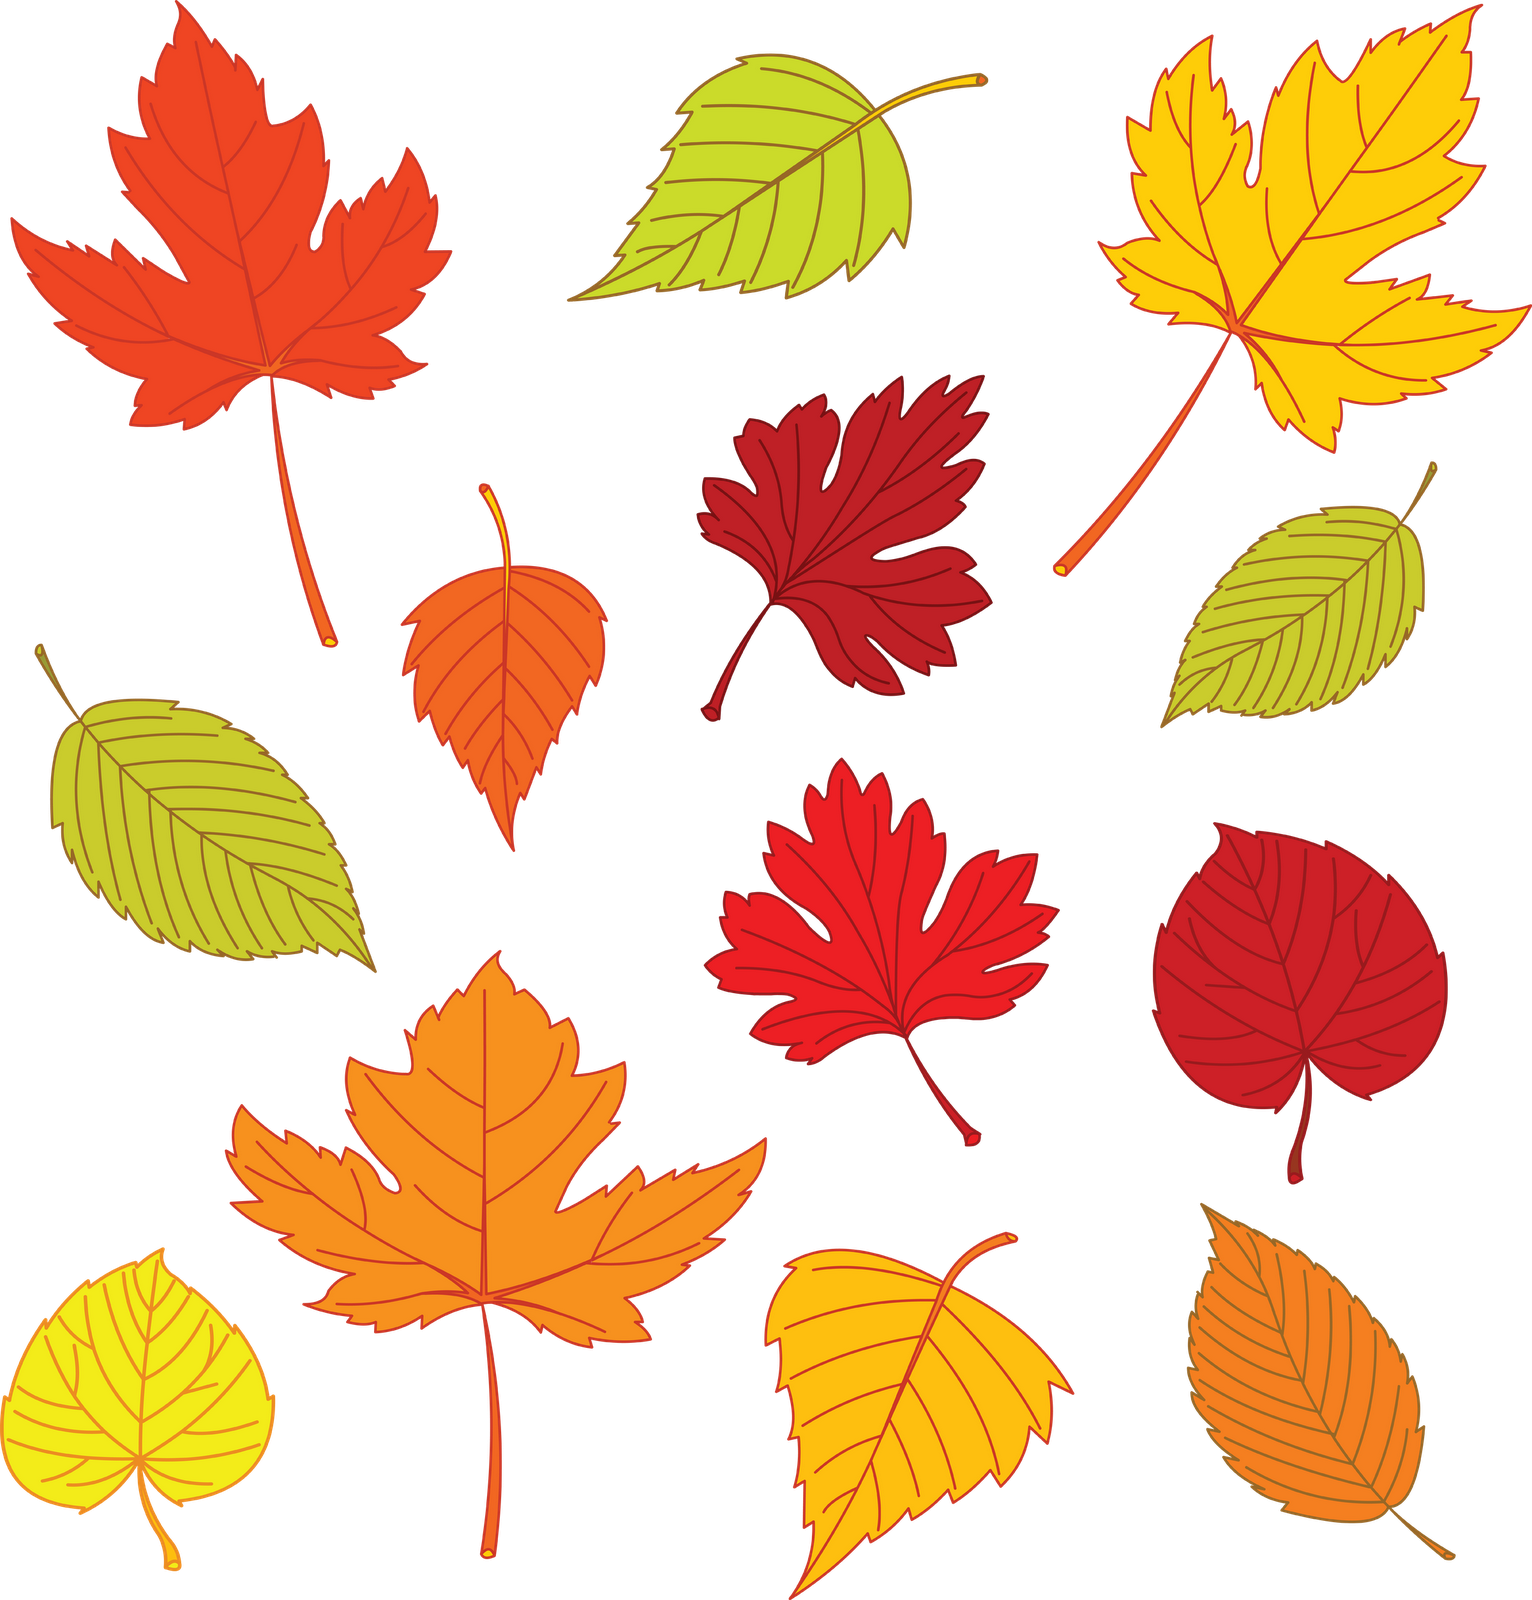 Thanksgiving garland clipart jpg library stock Leaf Drawing Template at GetDrawings.com | Free for personal use ... jpg library stock